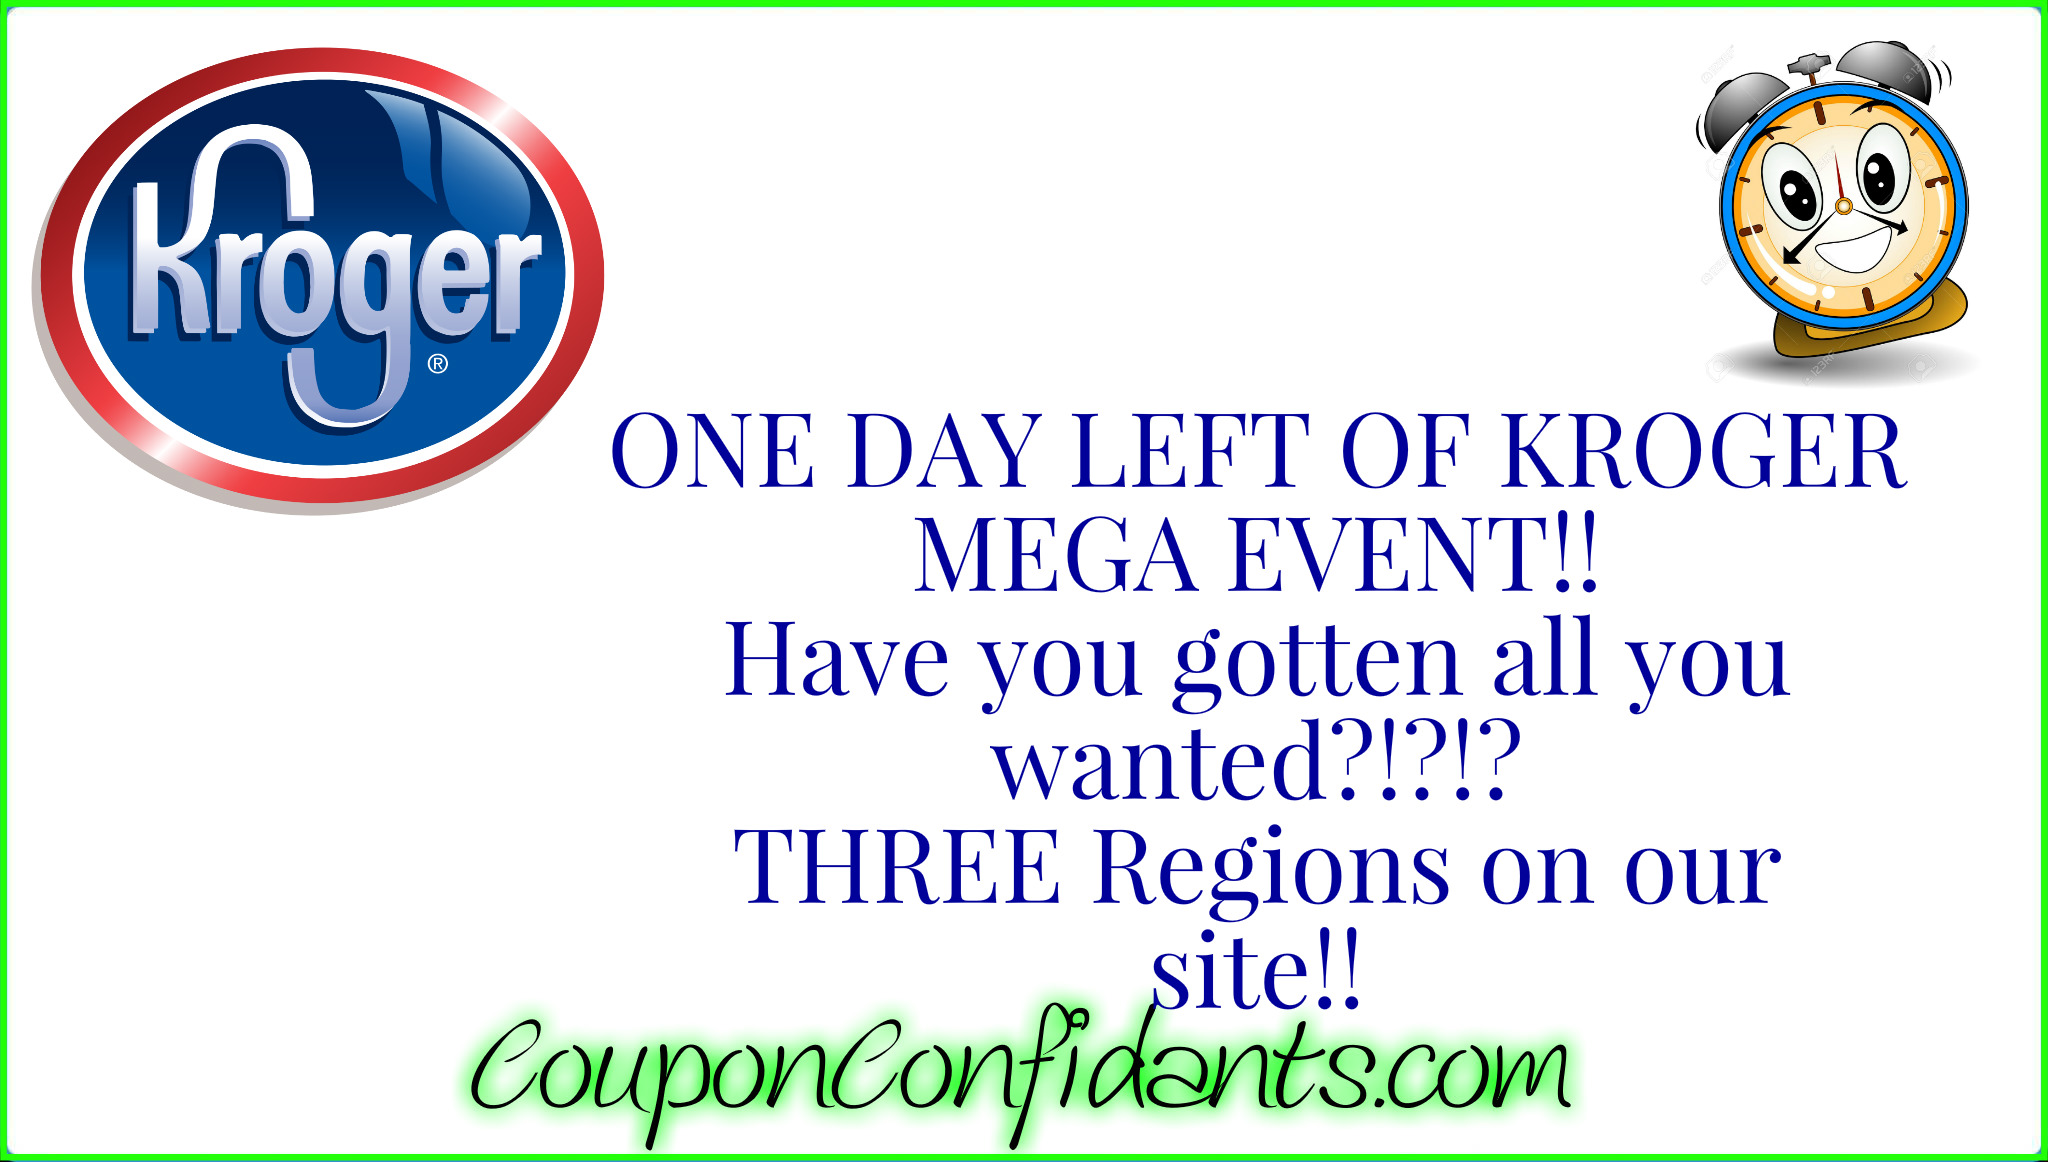 ONE day left for Kroger Mega Event!!